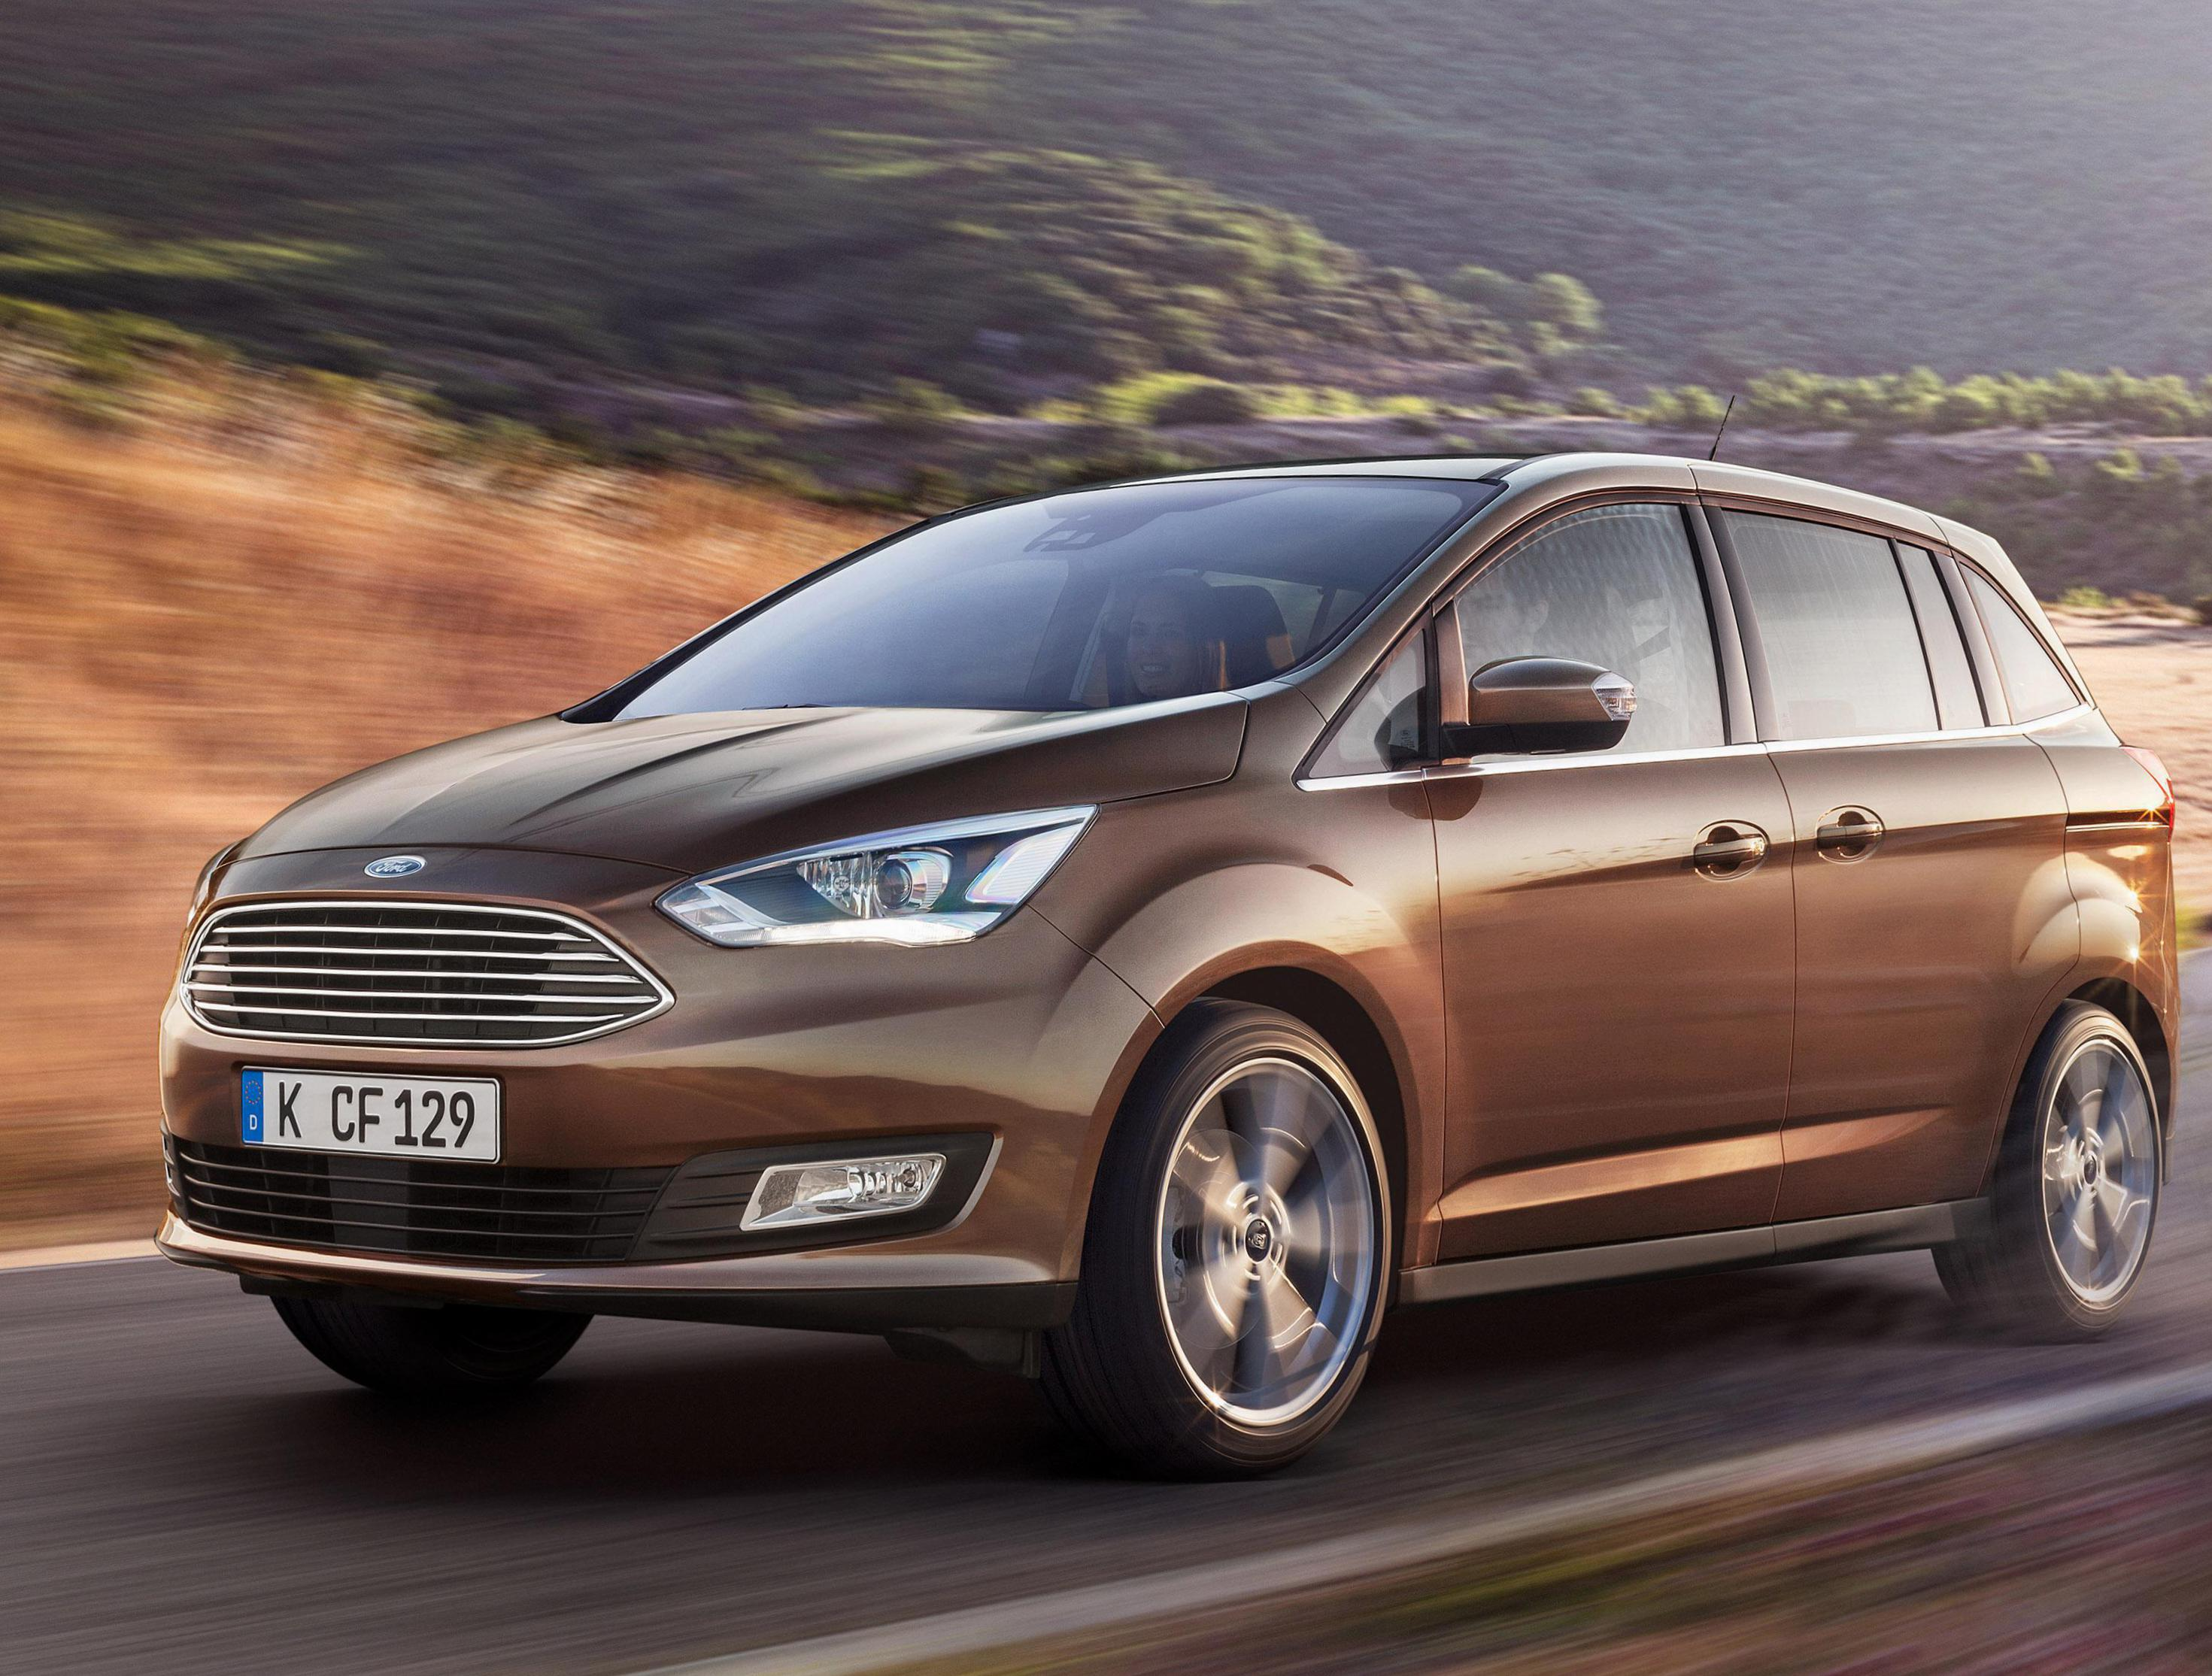 Grand C-Max Ford review 2013